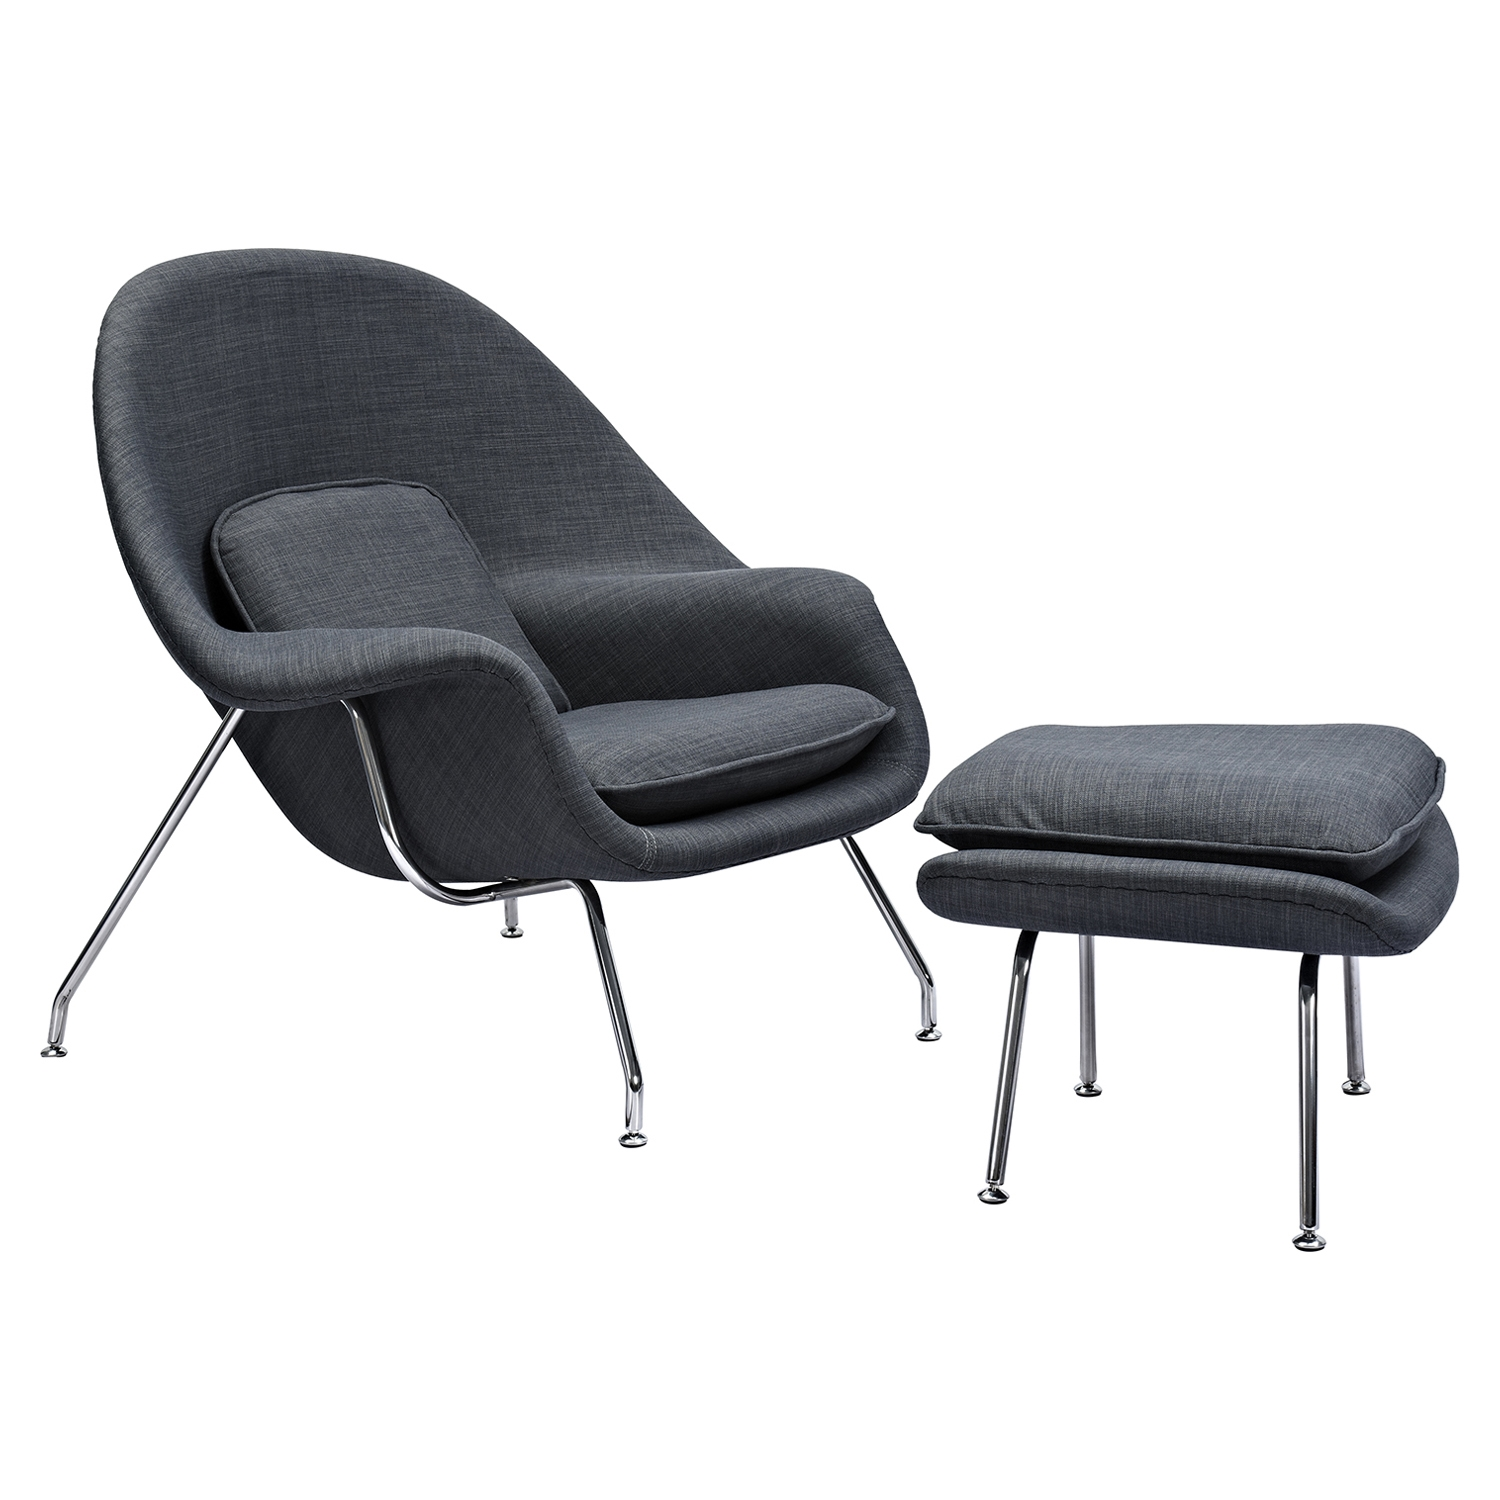 Saro Upholstered Chair - Charcoal Gray